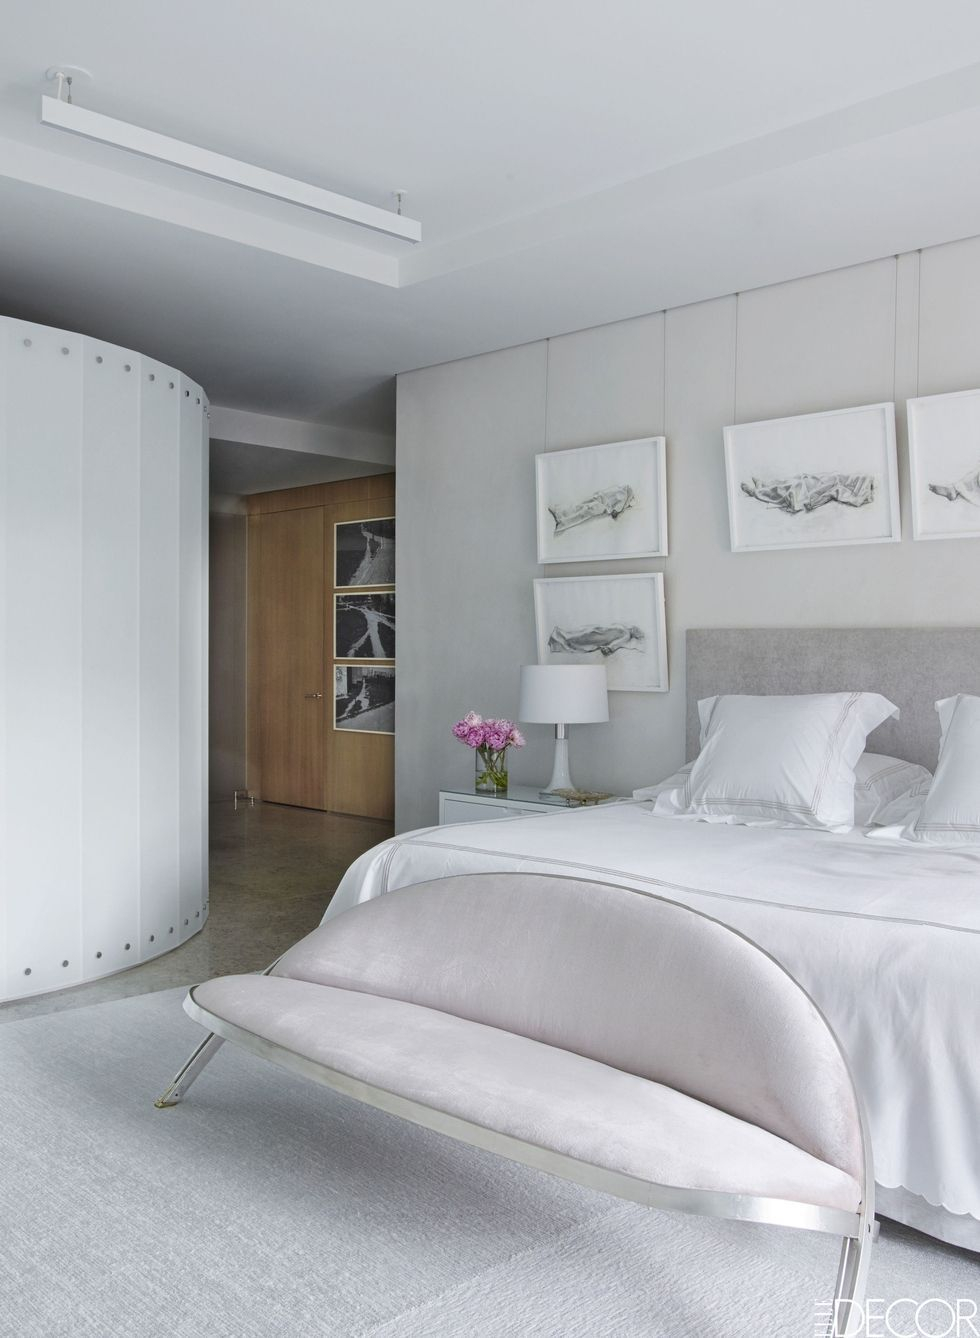 25 Inspiring Modern Bedroom Design Ideas throughout 14 Awesome Concepts of How to Build Modern Bedroom Pics